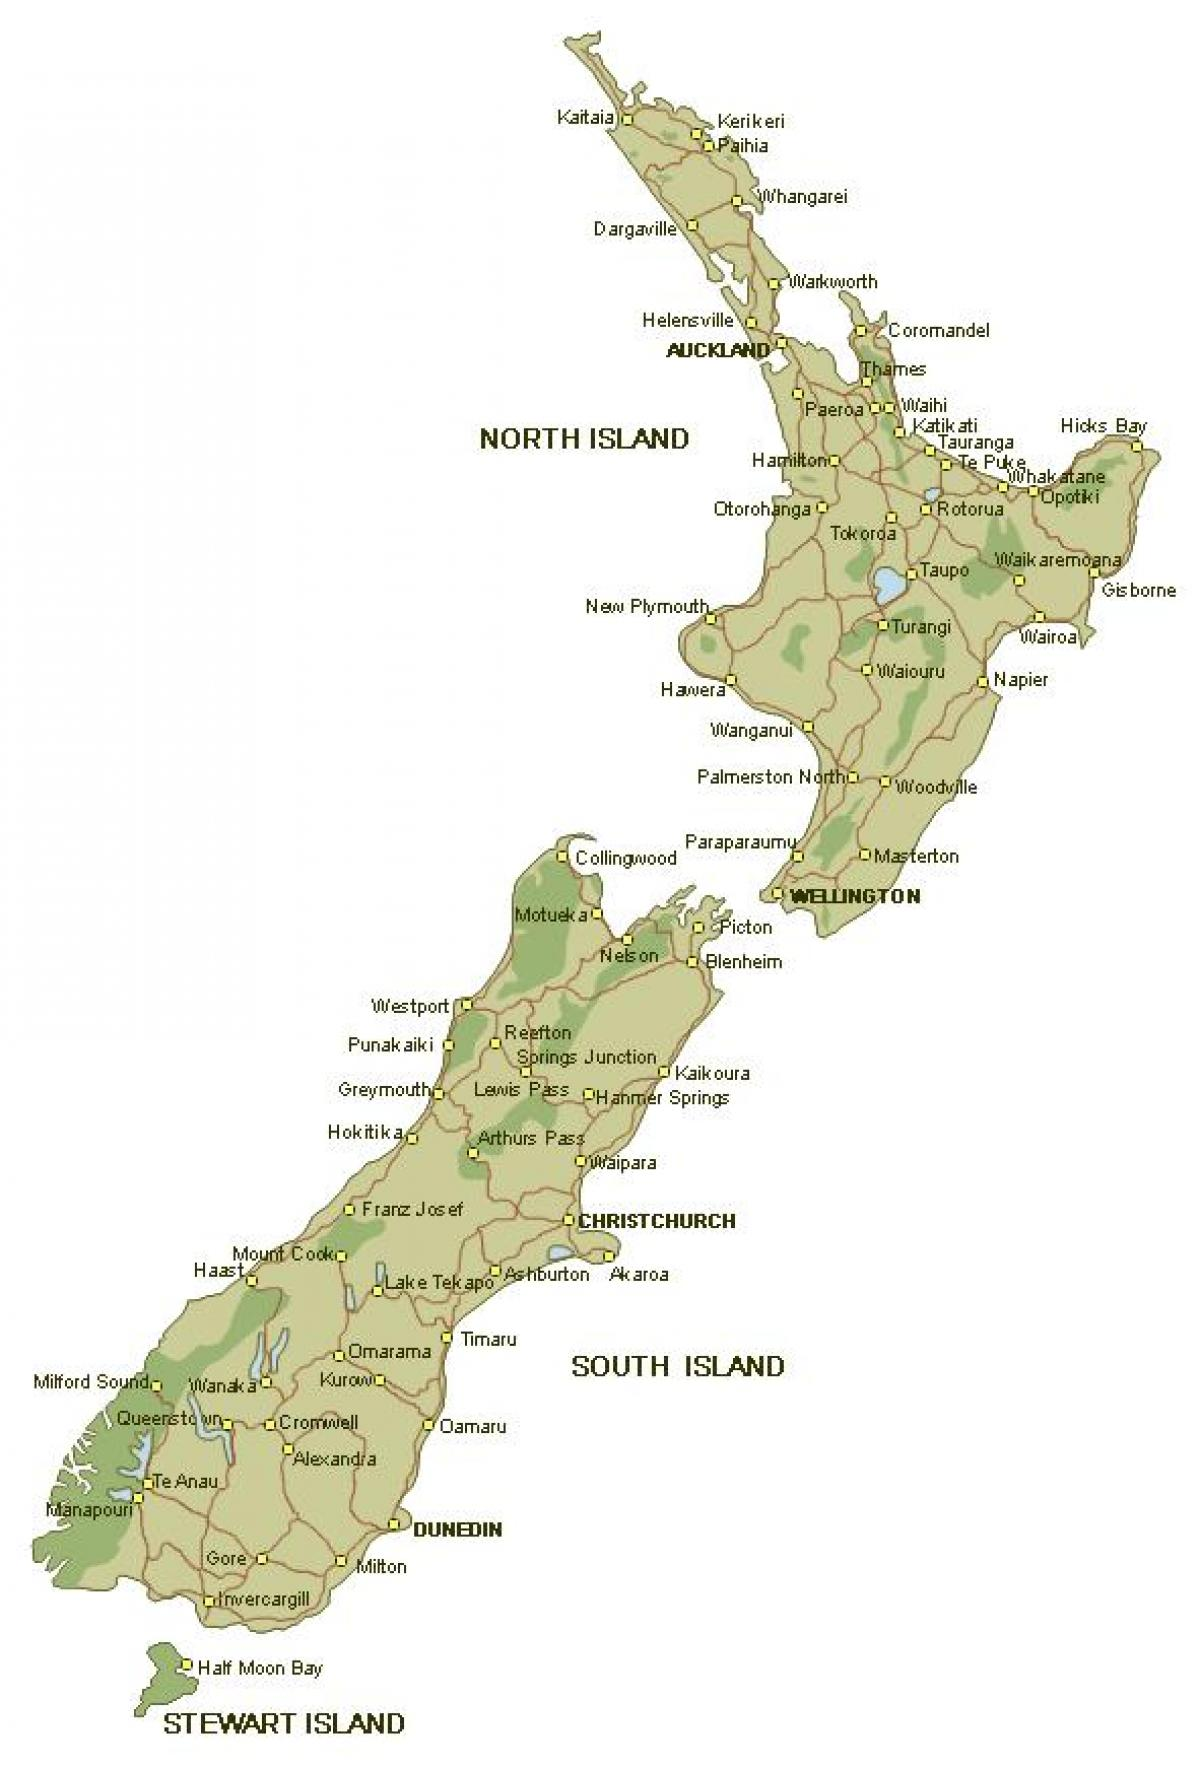 Detailed Map Of New Zealand.Detailed Map Of New Zealand Map Of Detailed New Zealand Australia